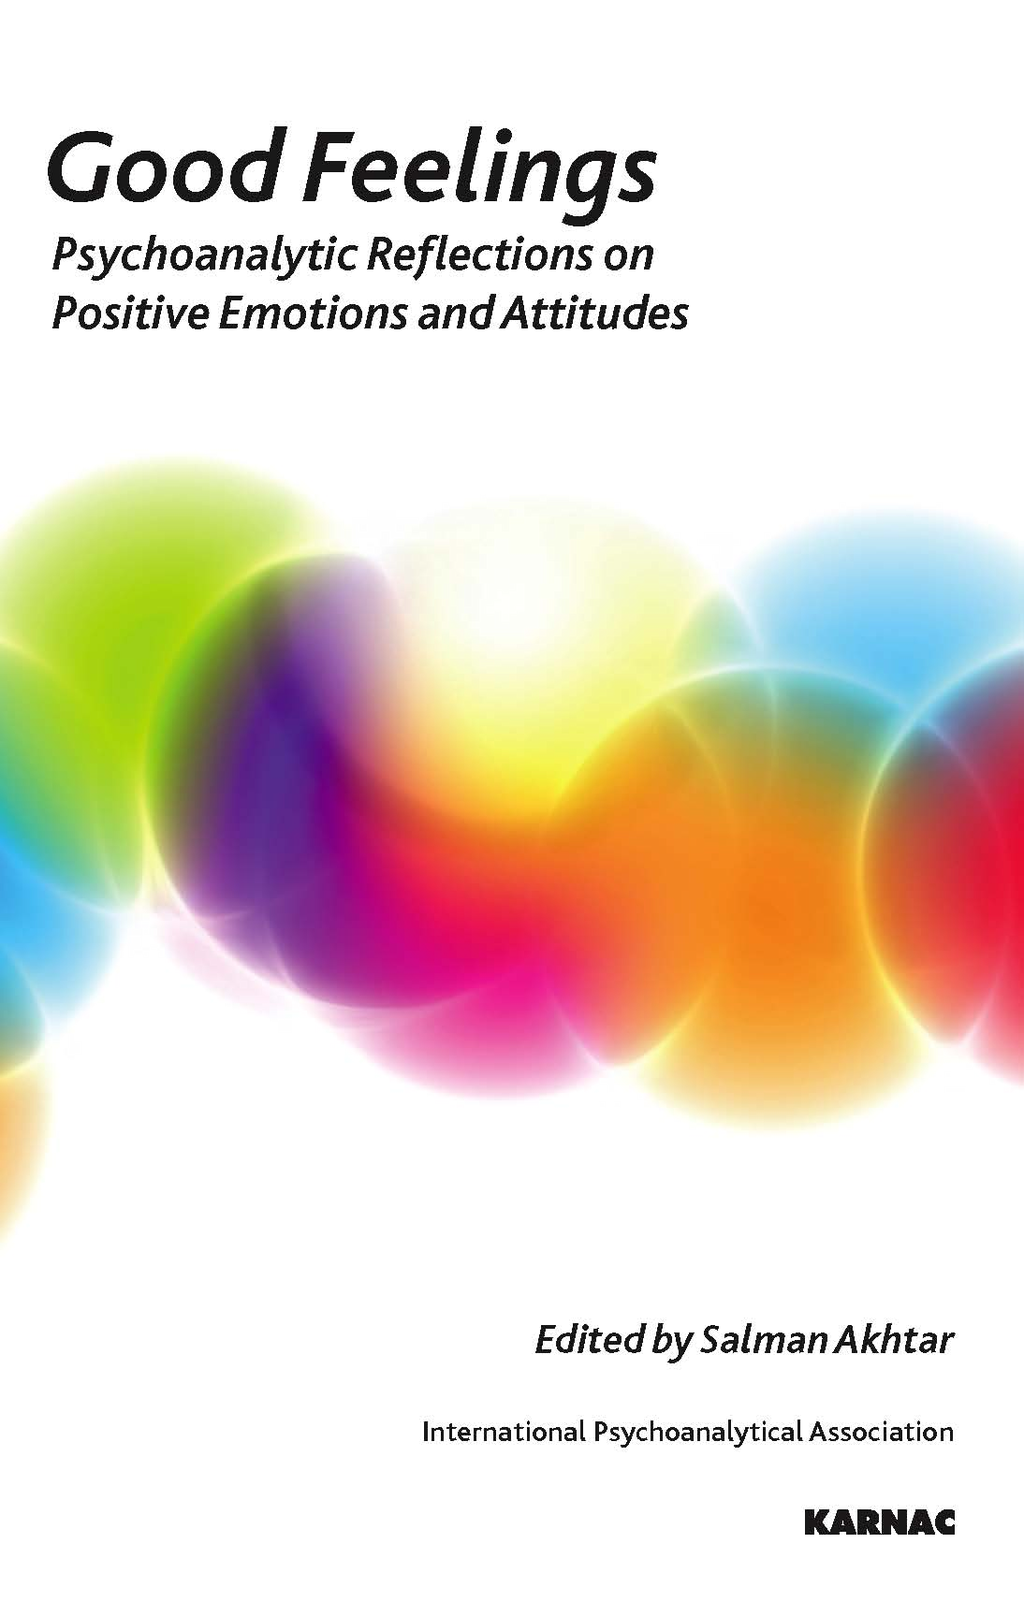 Good Feelings: Psychoanalytic Reflections on Positive Emotions and Attitudes By: